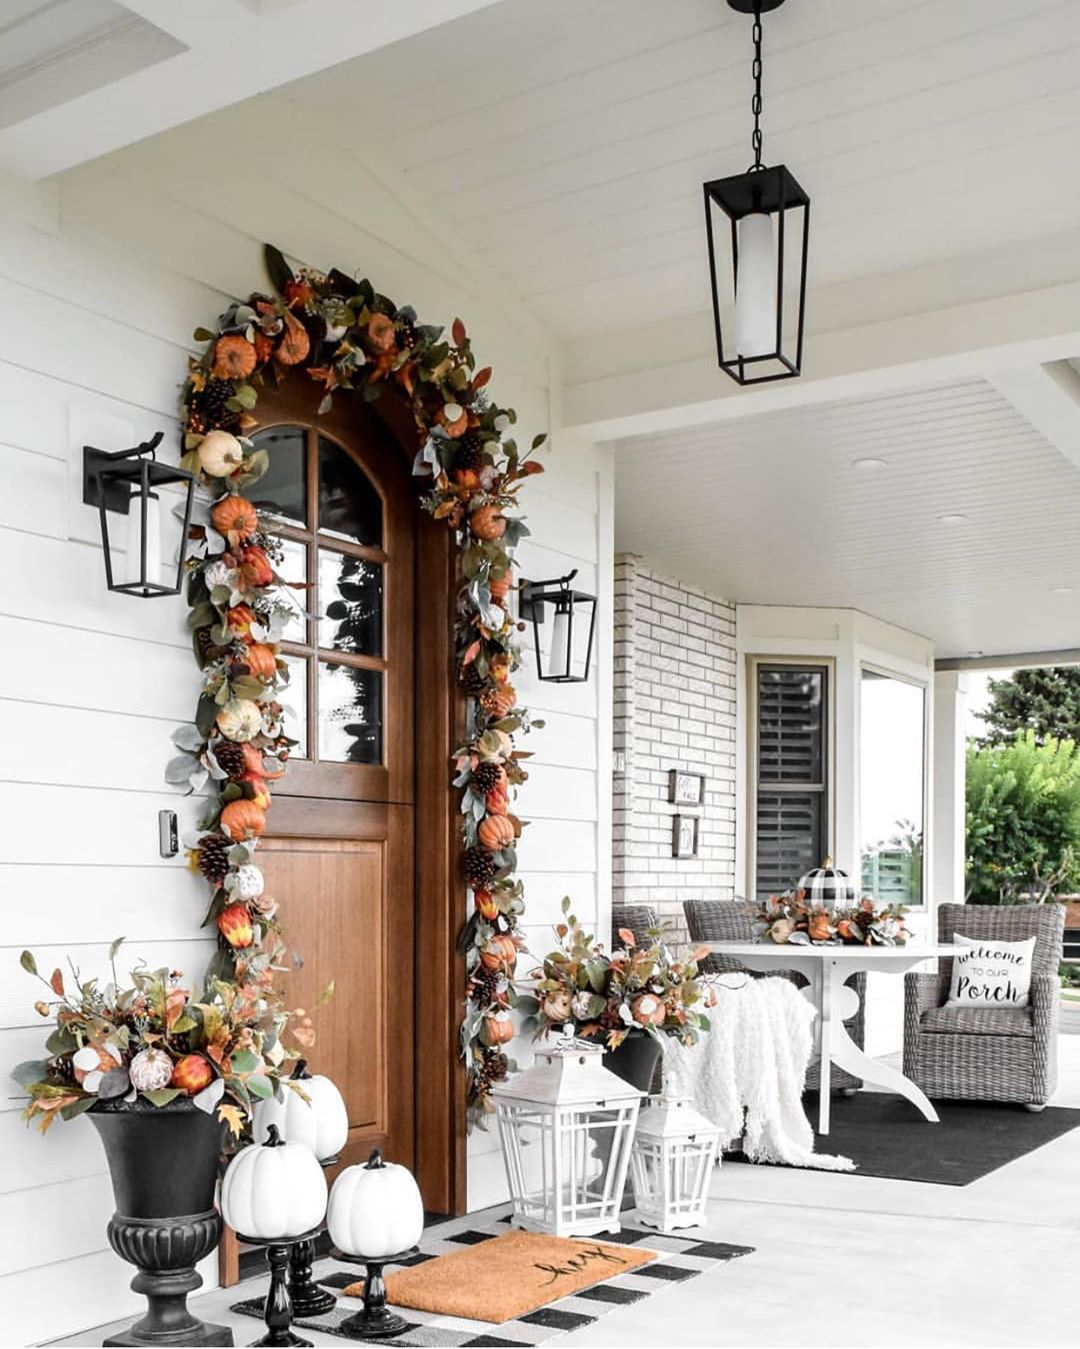 1569404385 363 front porch decor ideas to welcome fall with - Front Porch Decor Ideas To Welcome Fall With